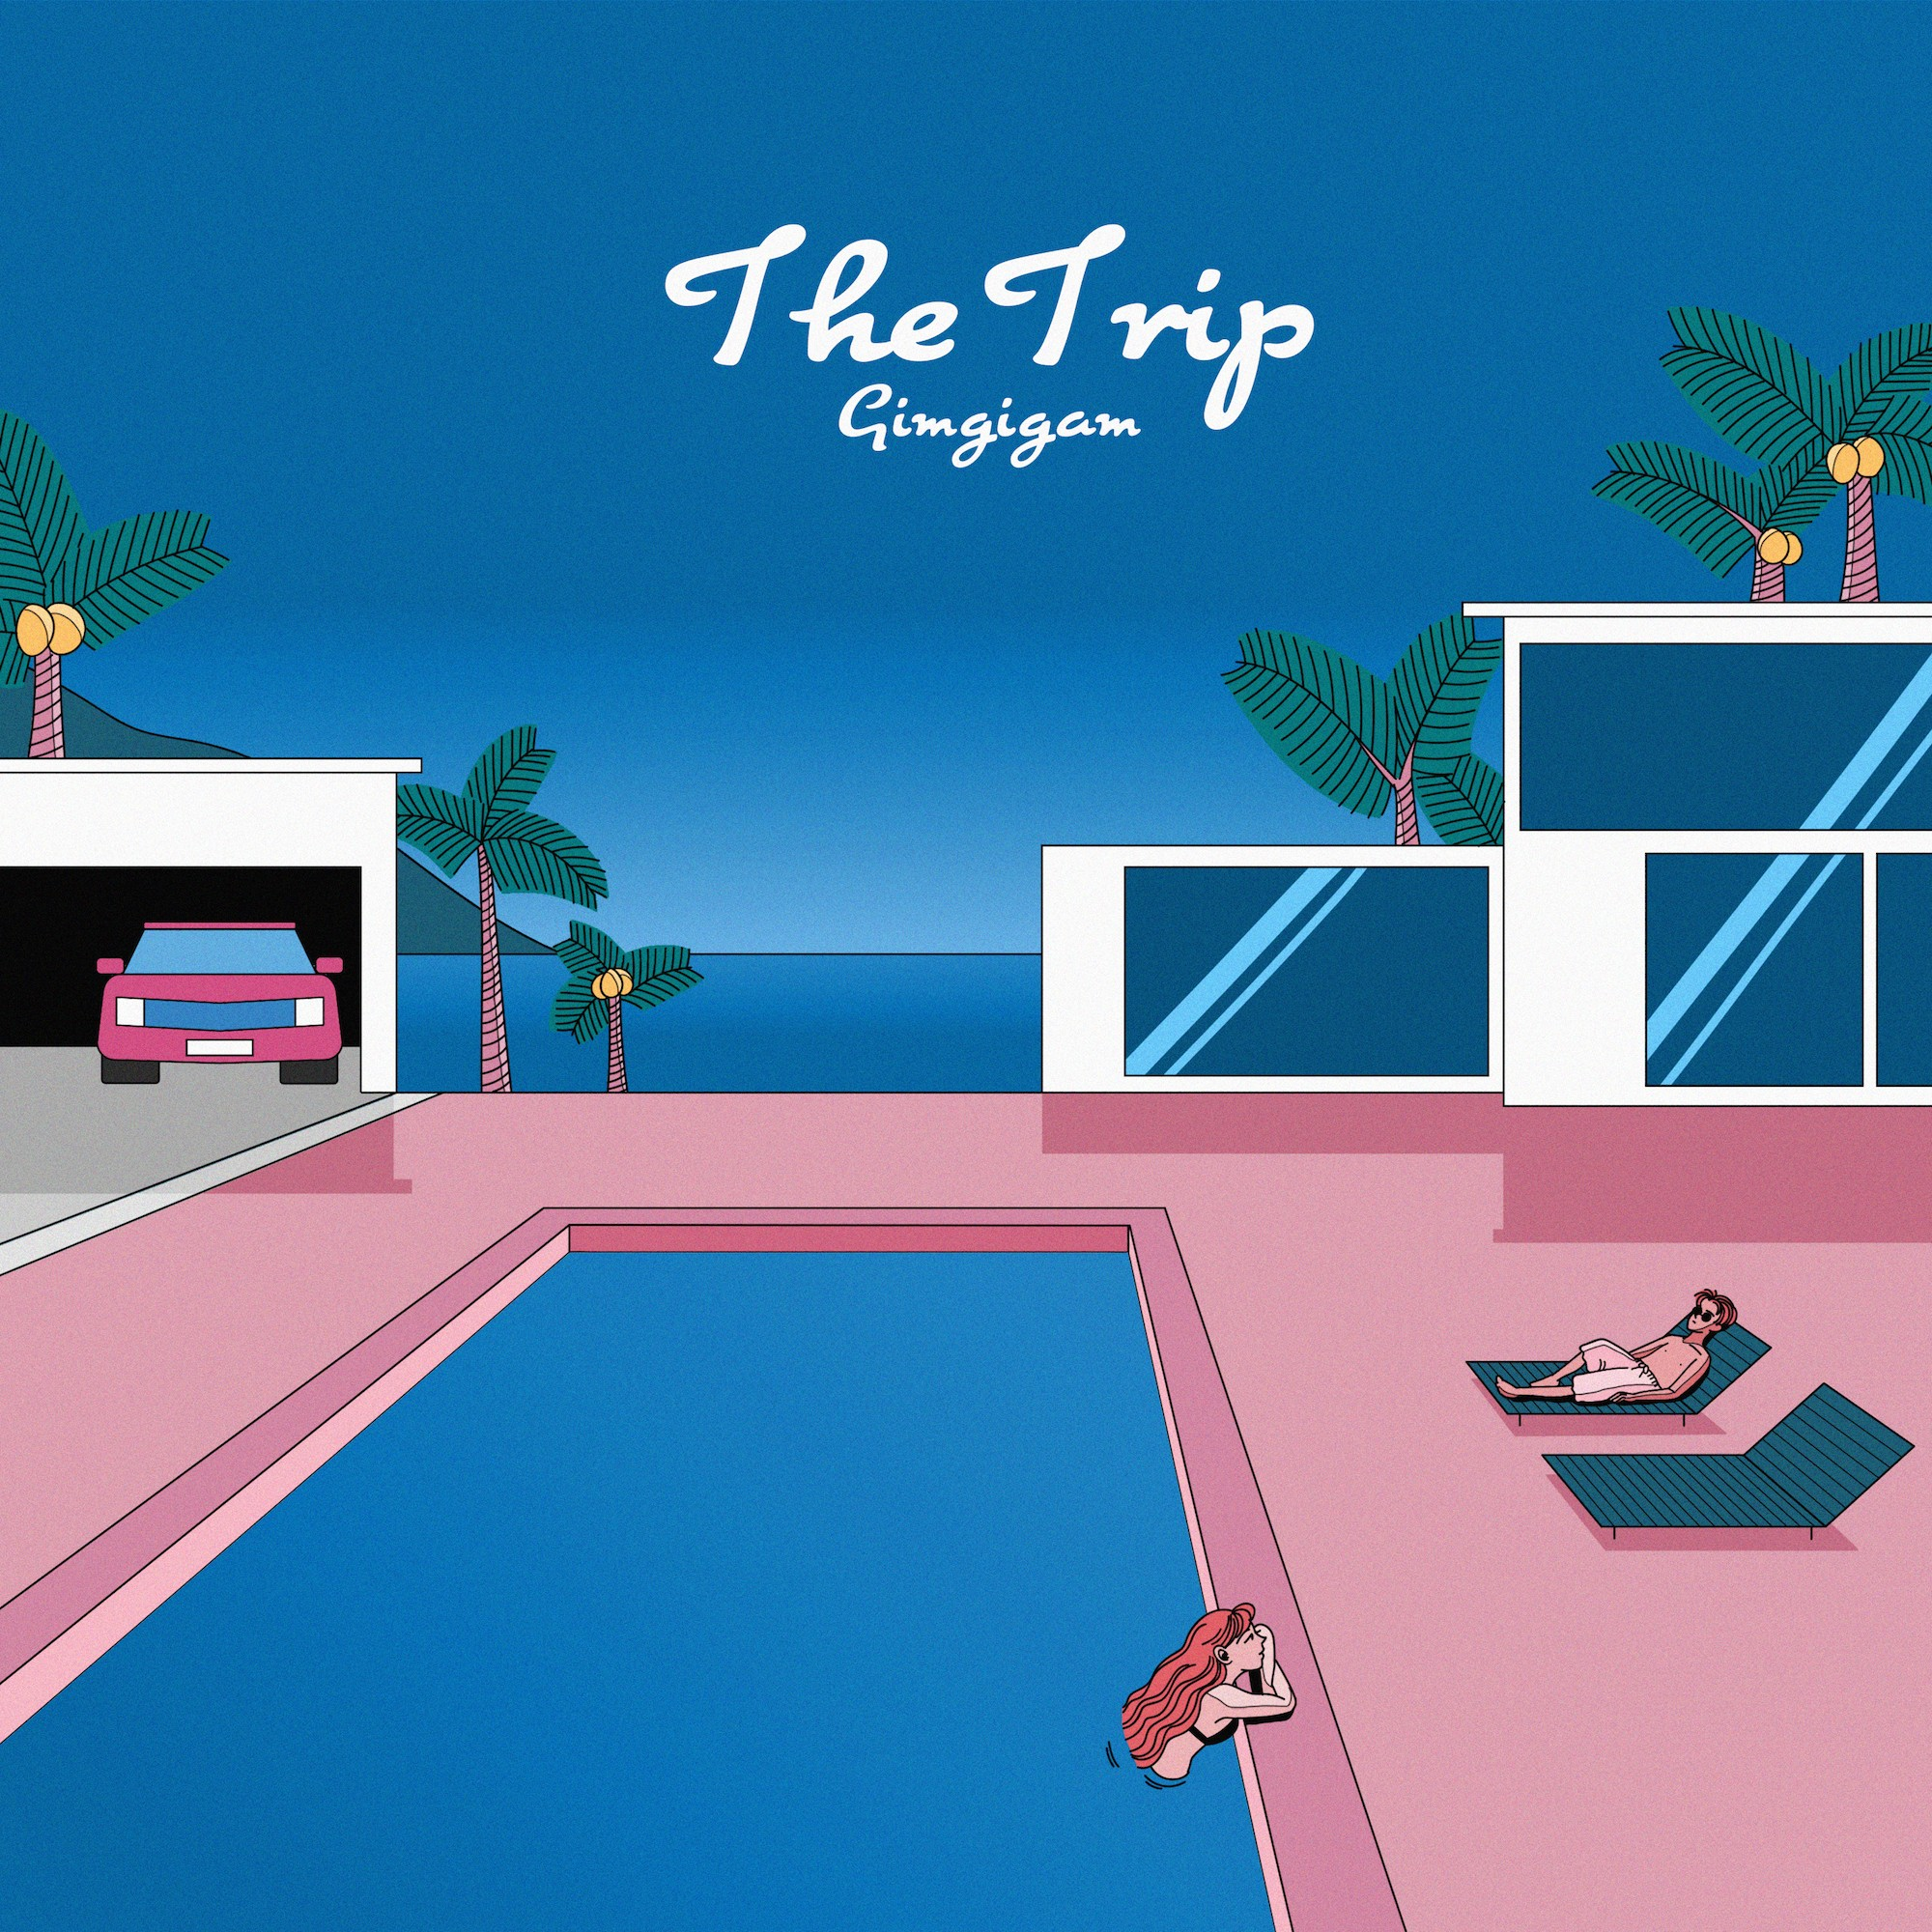 Gimgigam – The Trip [FLAC + MP3 320 / WEB] [2019.02.15]